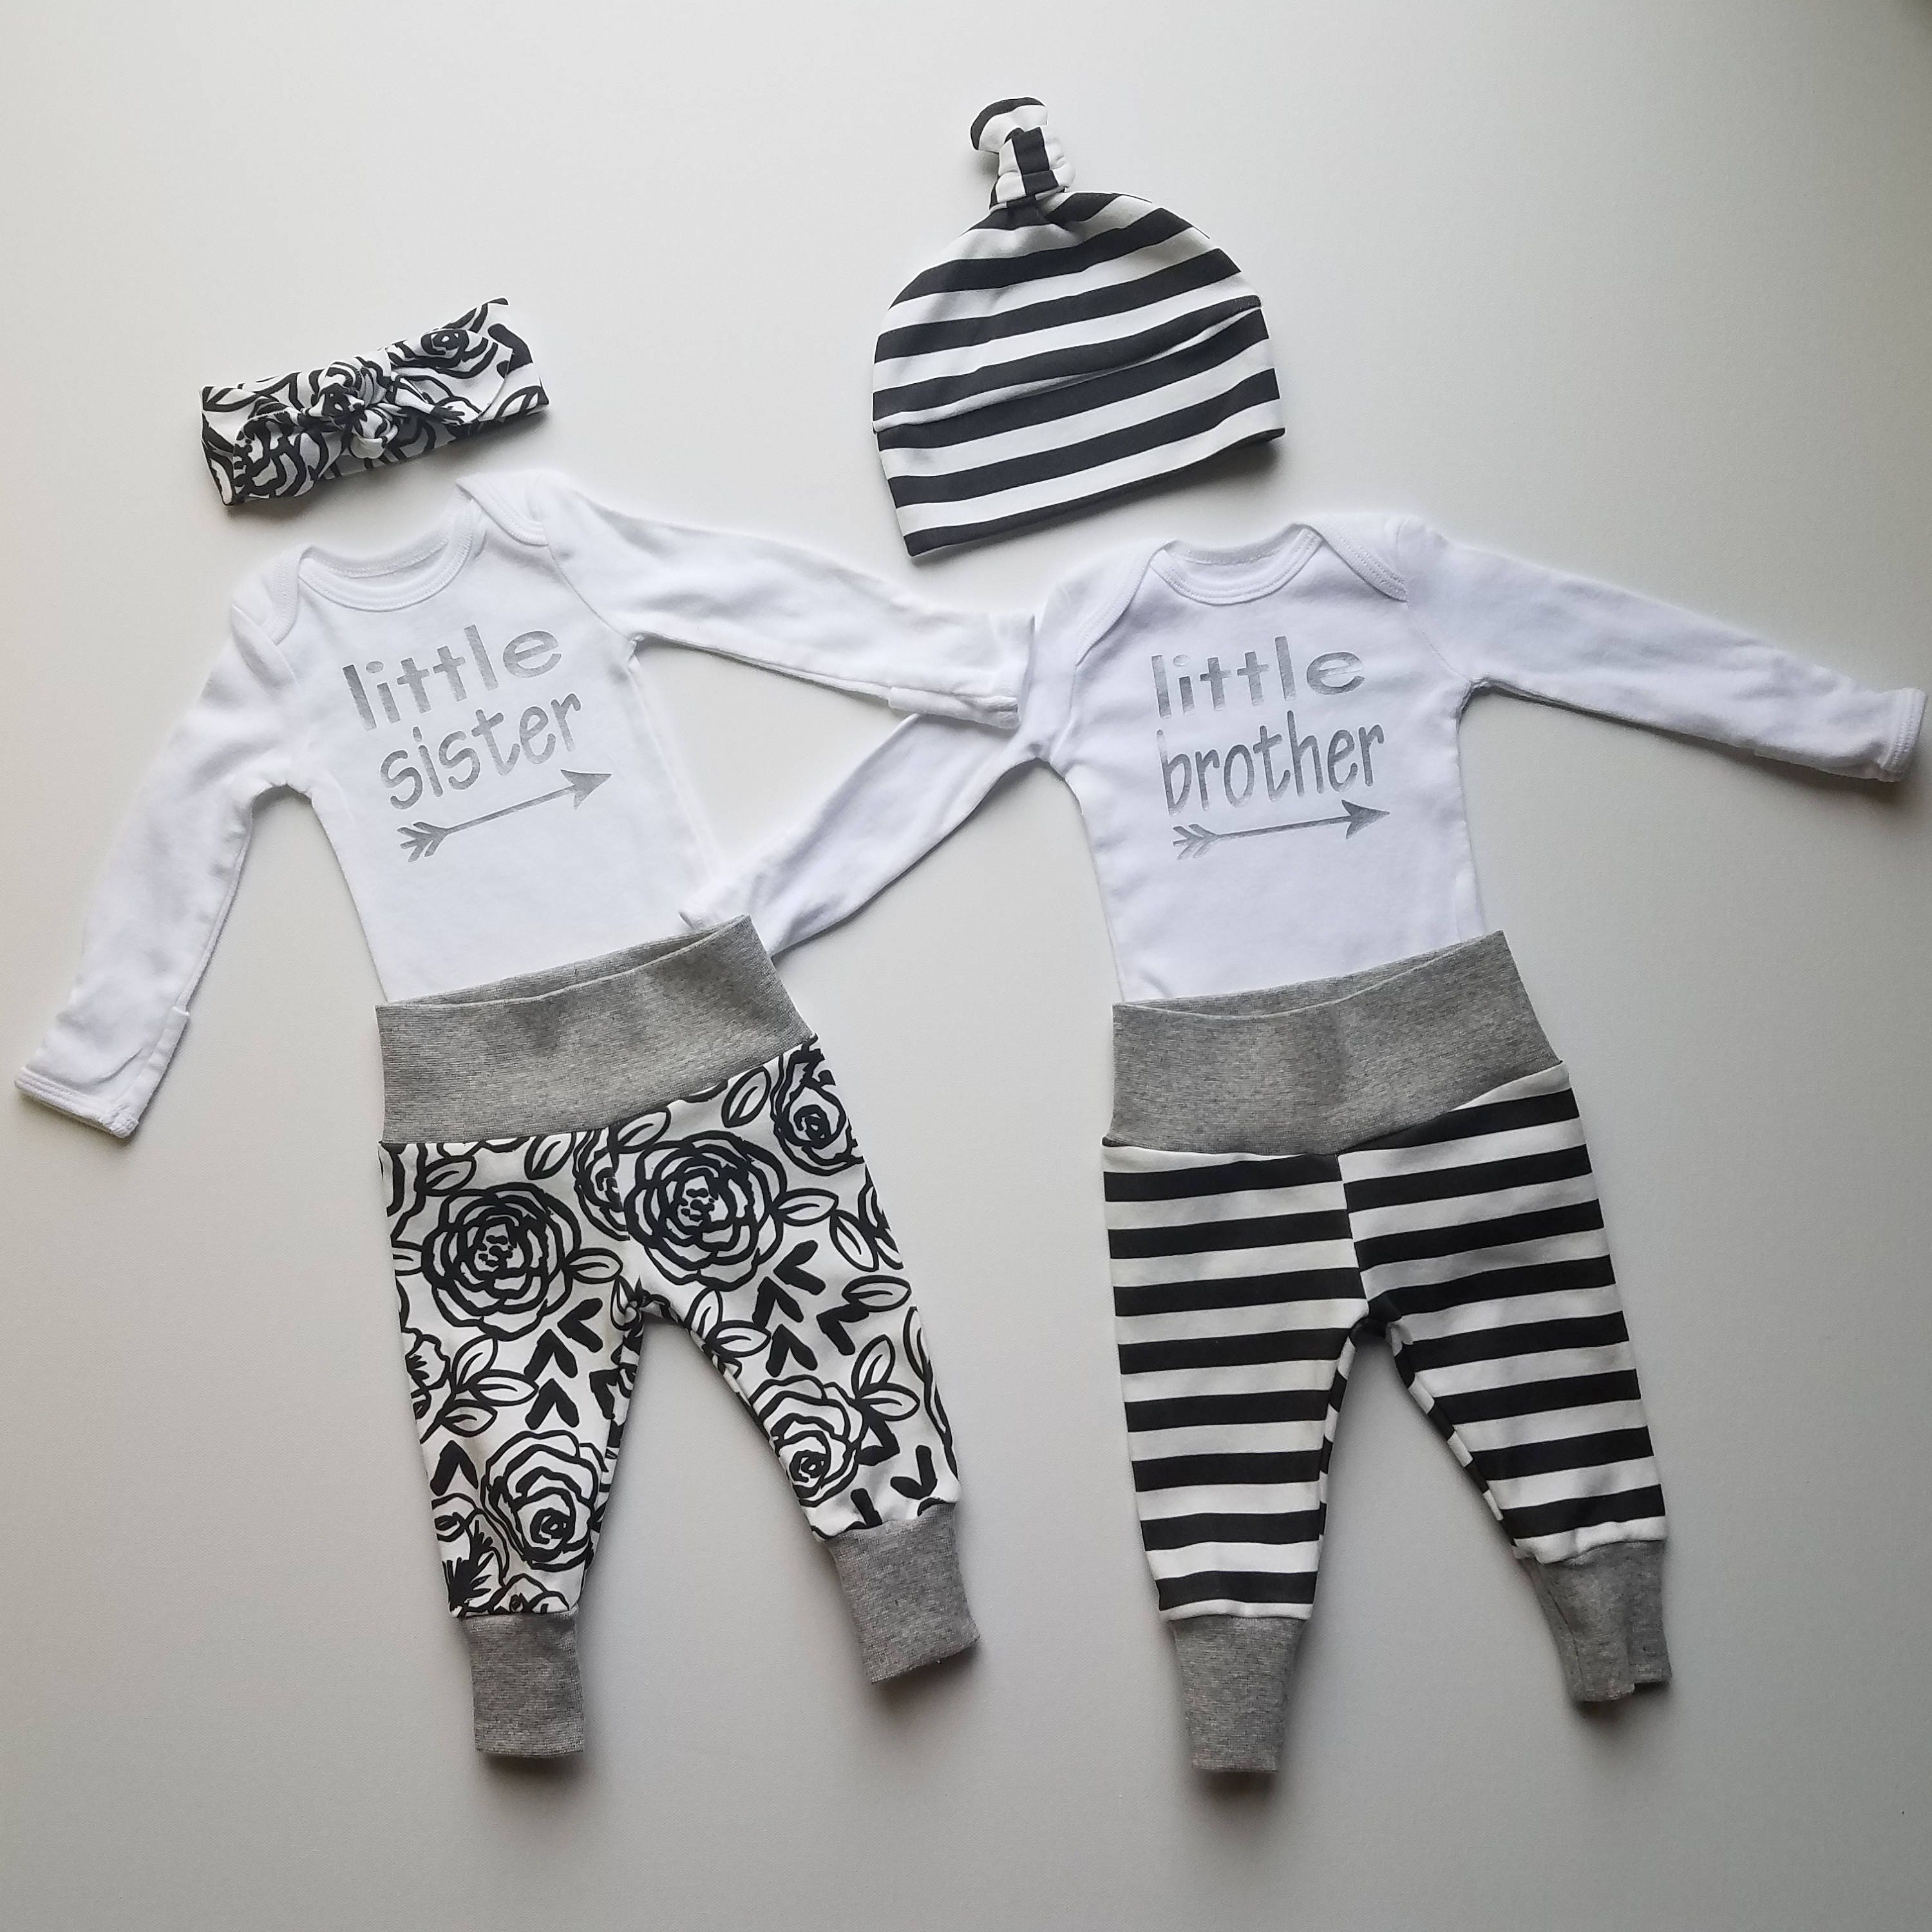 299708808 Baby Girl Coming Home Outfits. Baby Boy Coming Home Outfit. Twins ...